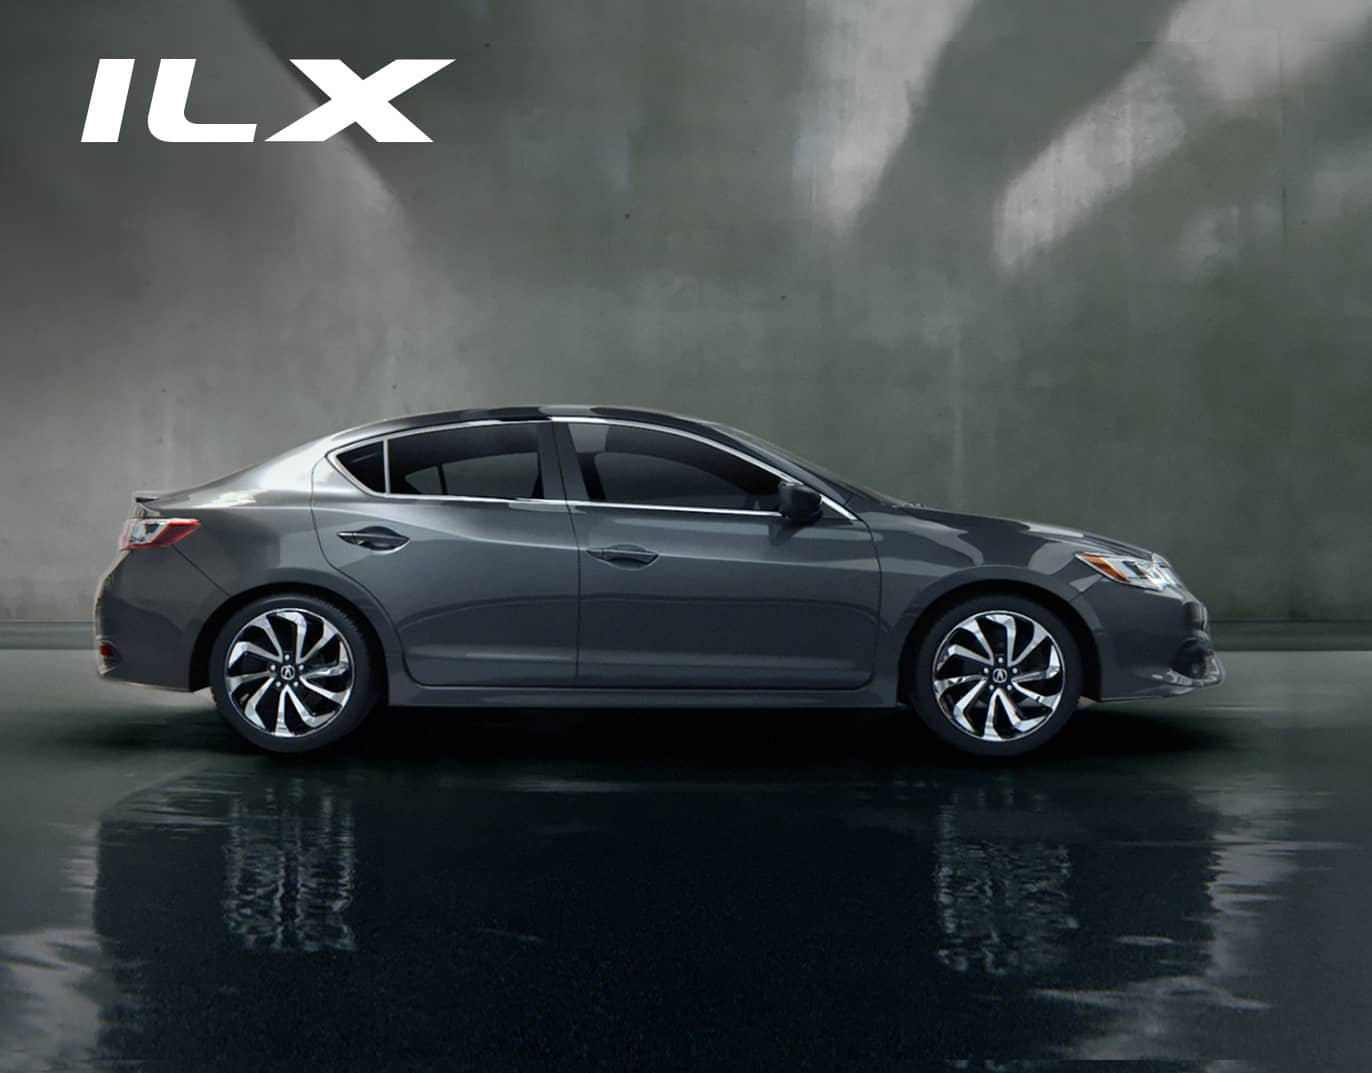 Acura ILX Build Price Acuracom - Acura ilx 2018 black